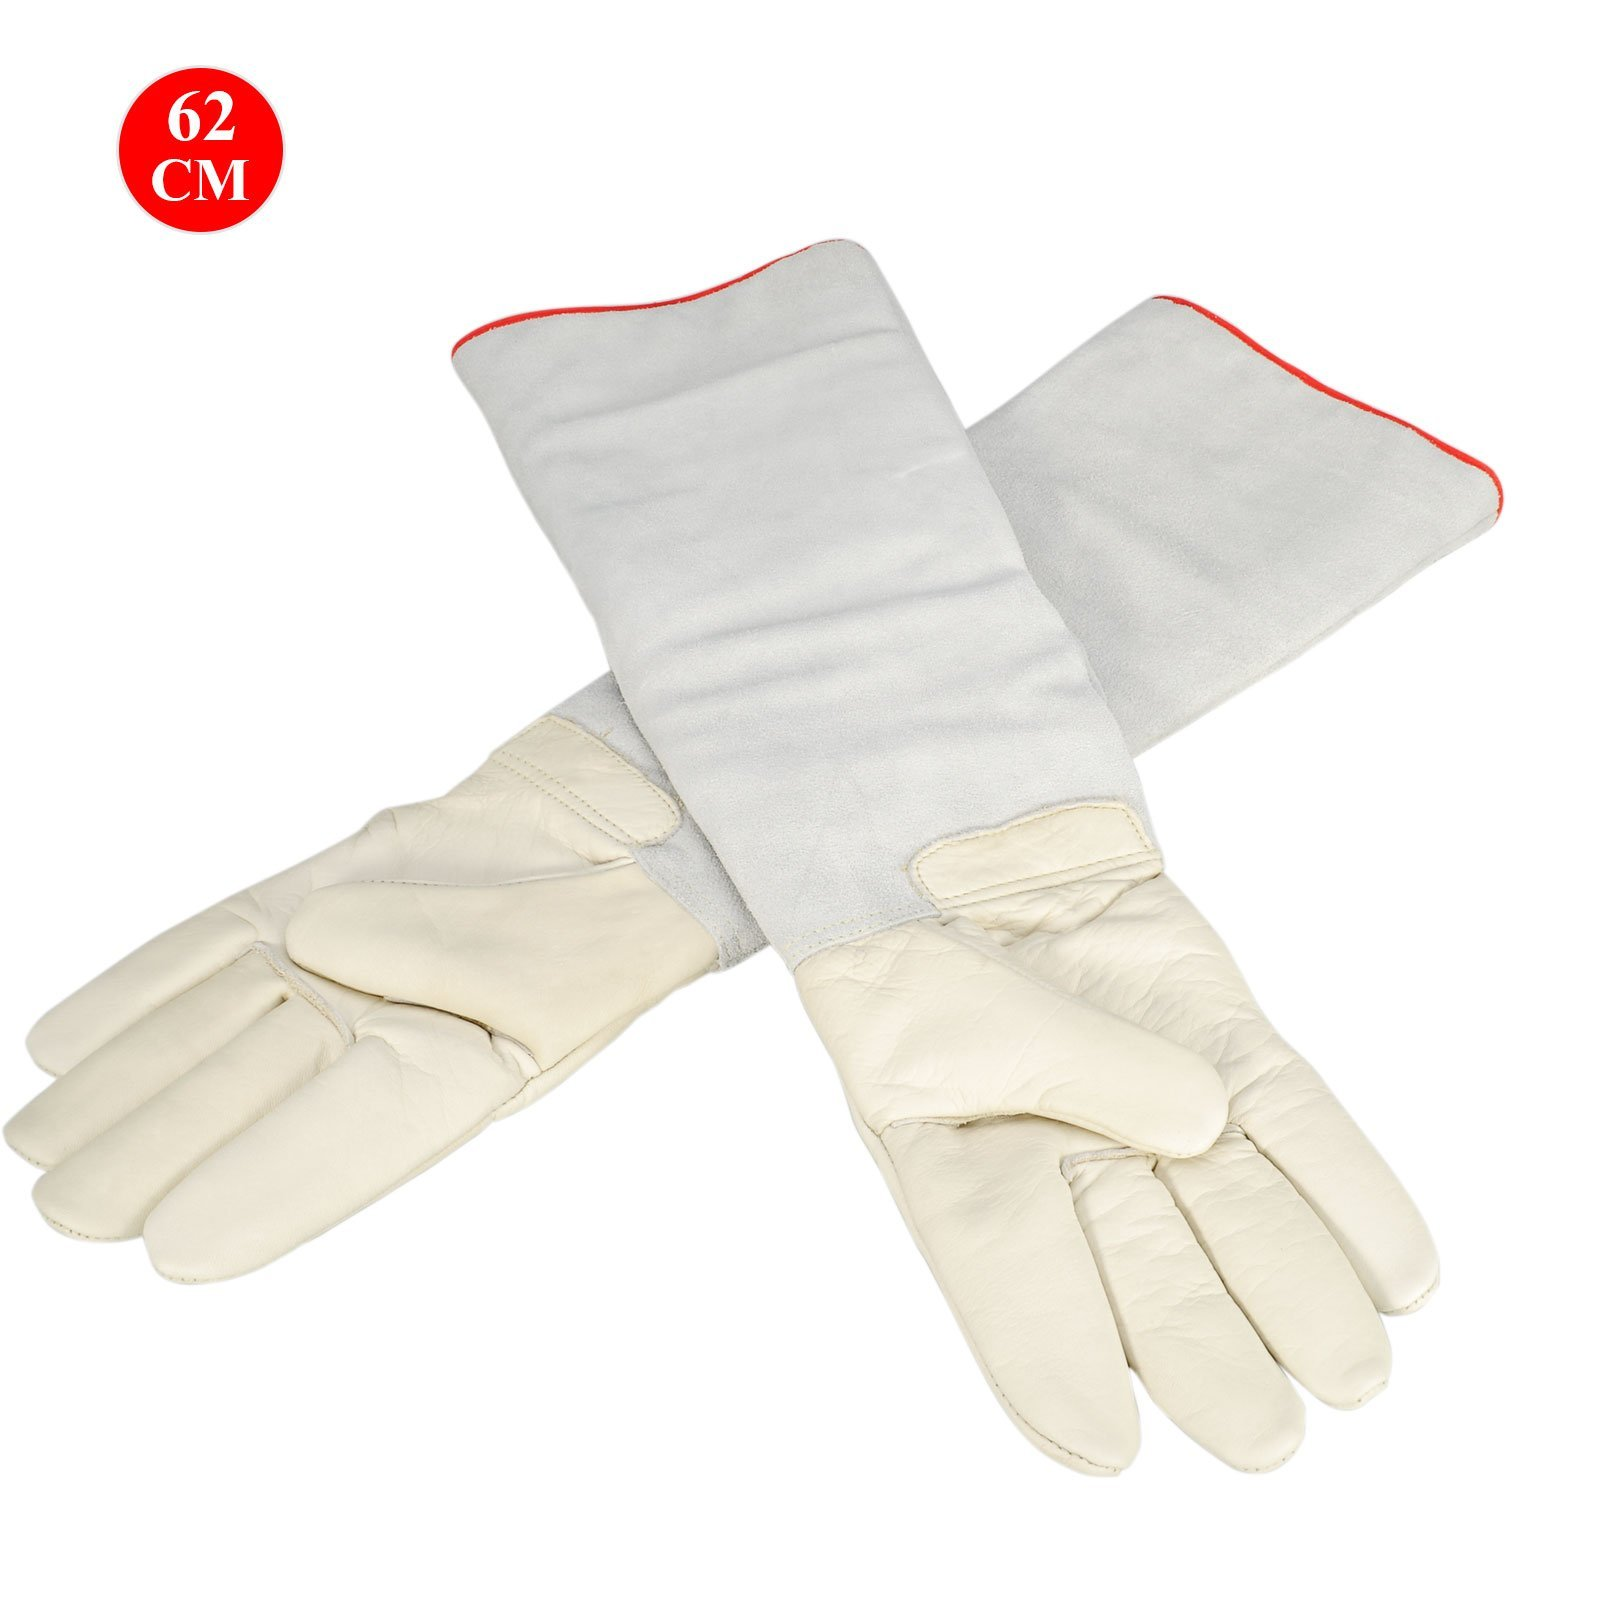 OFTEN Ultra Long Cryogenic Gloves Waterproof Protective Gloves Liquid Nitrogen Frozen Gloves Cold Storage,White,24.41''